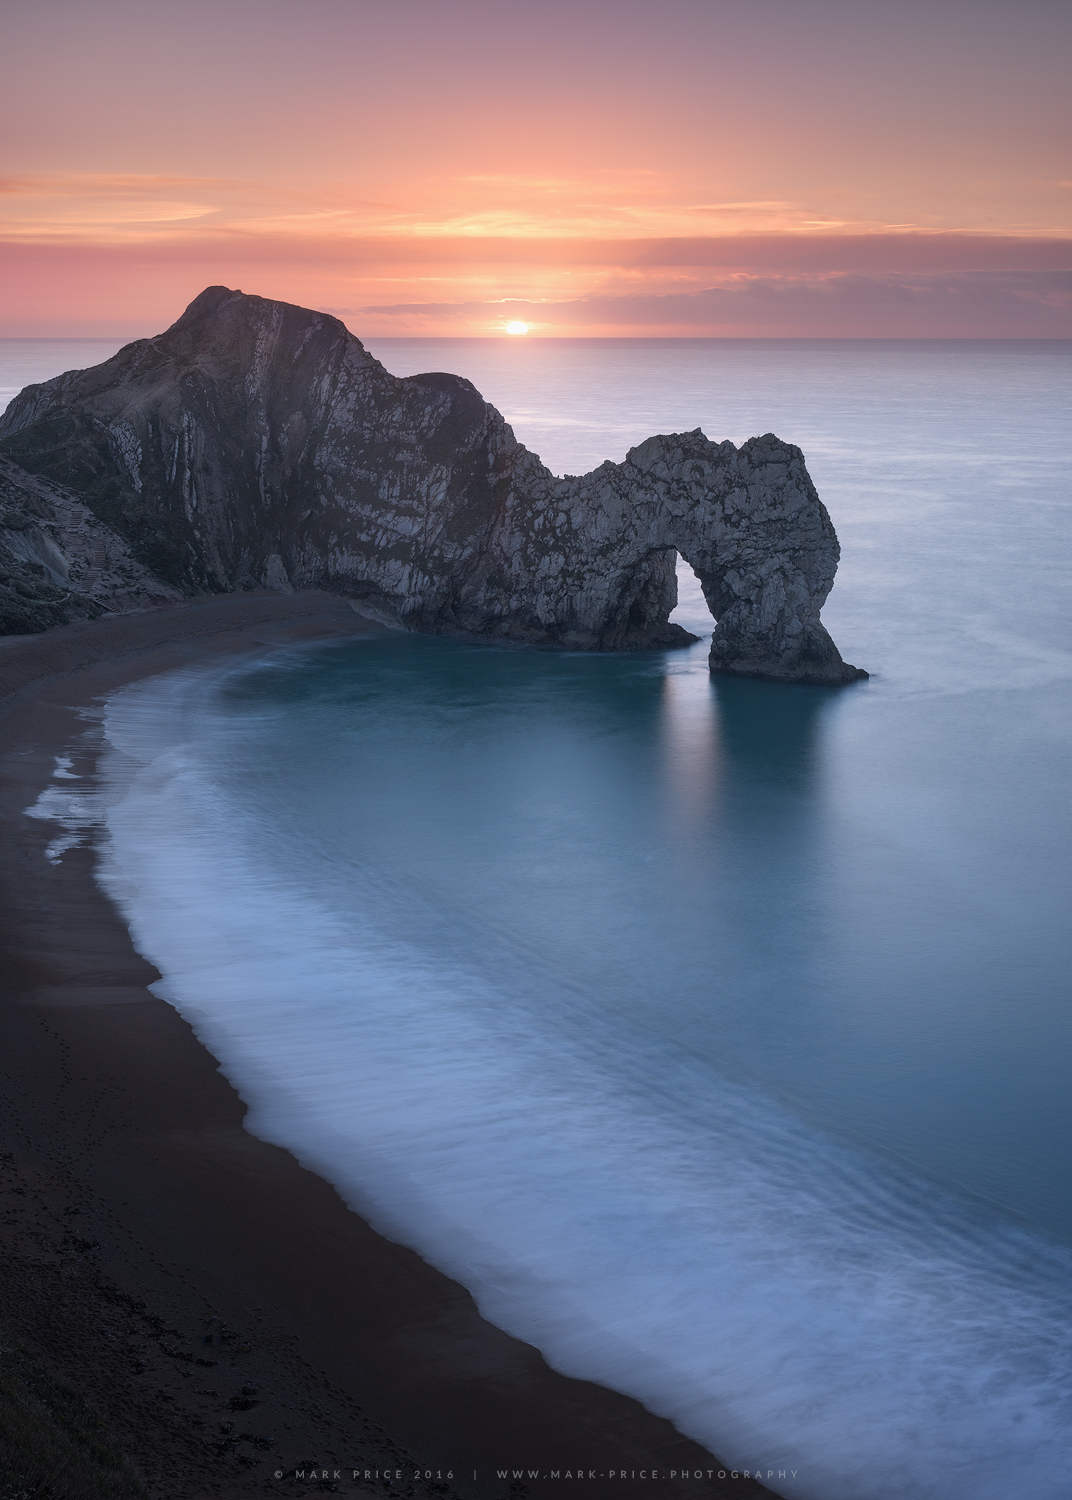 A lovely winter sunrise at the beautiful Durdle Door